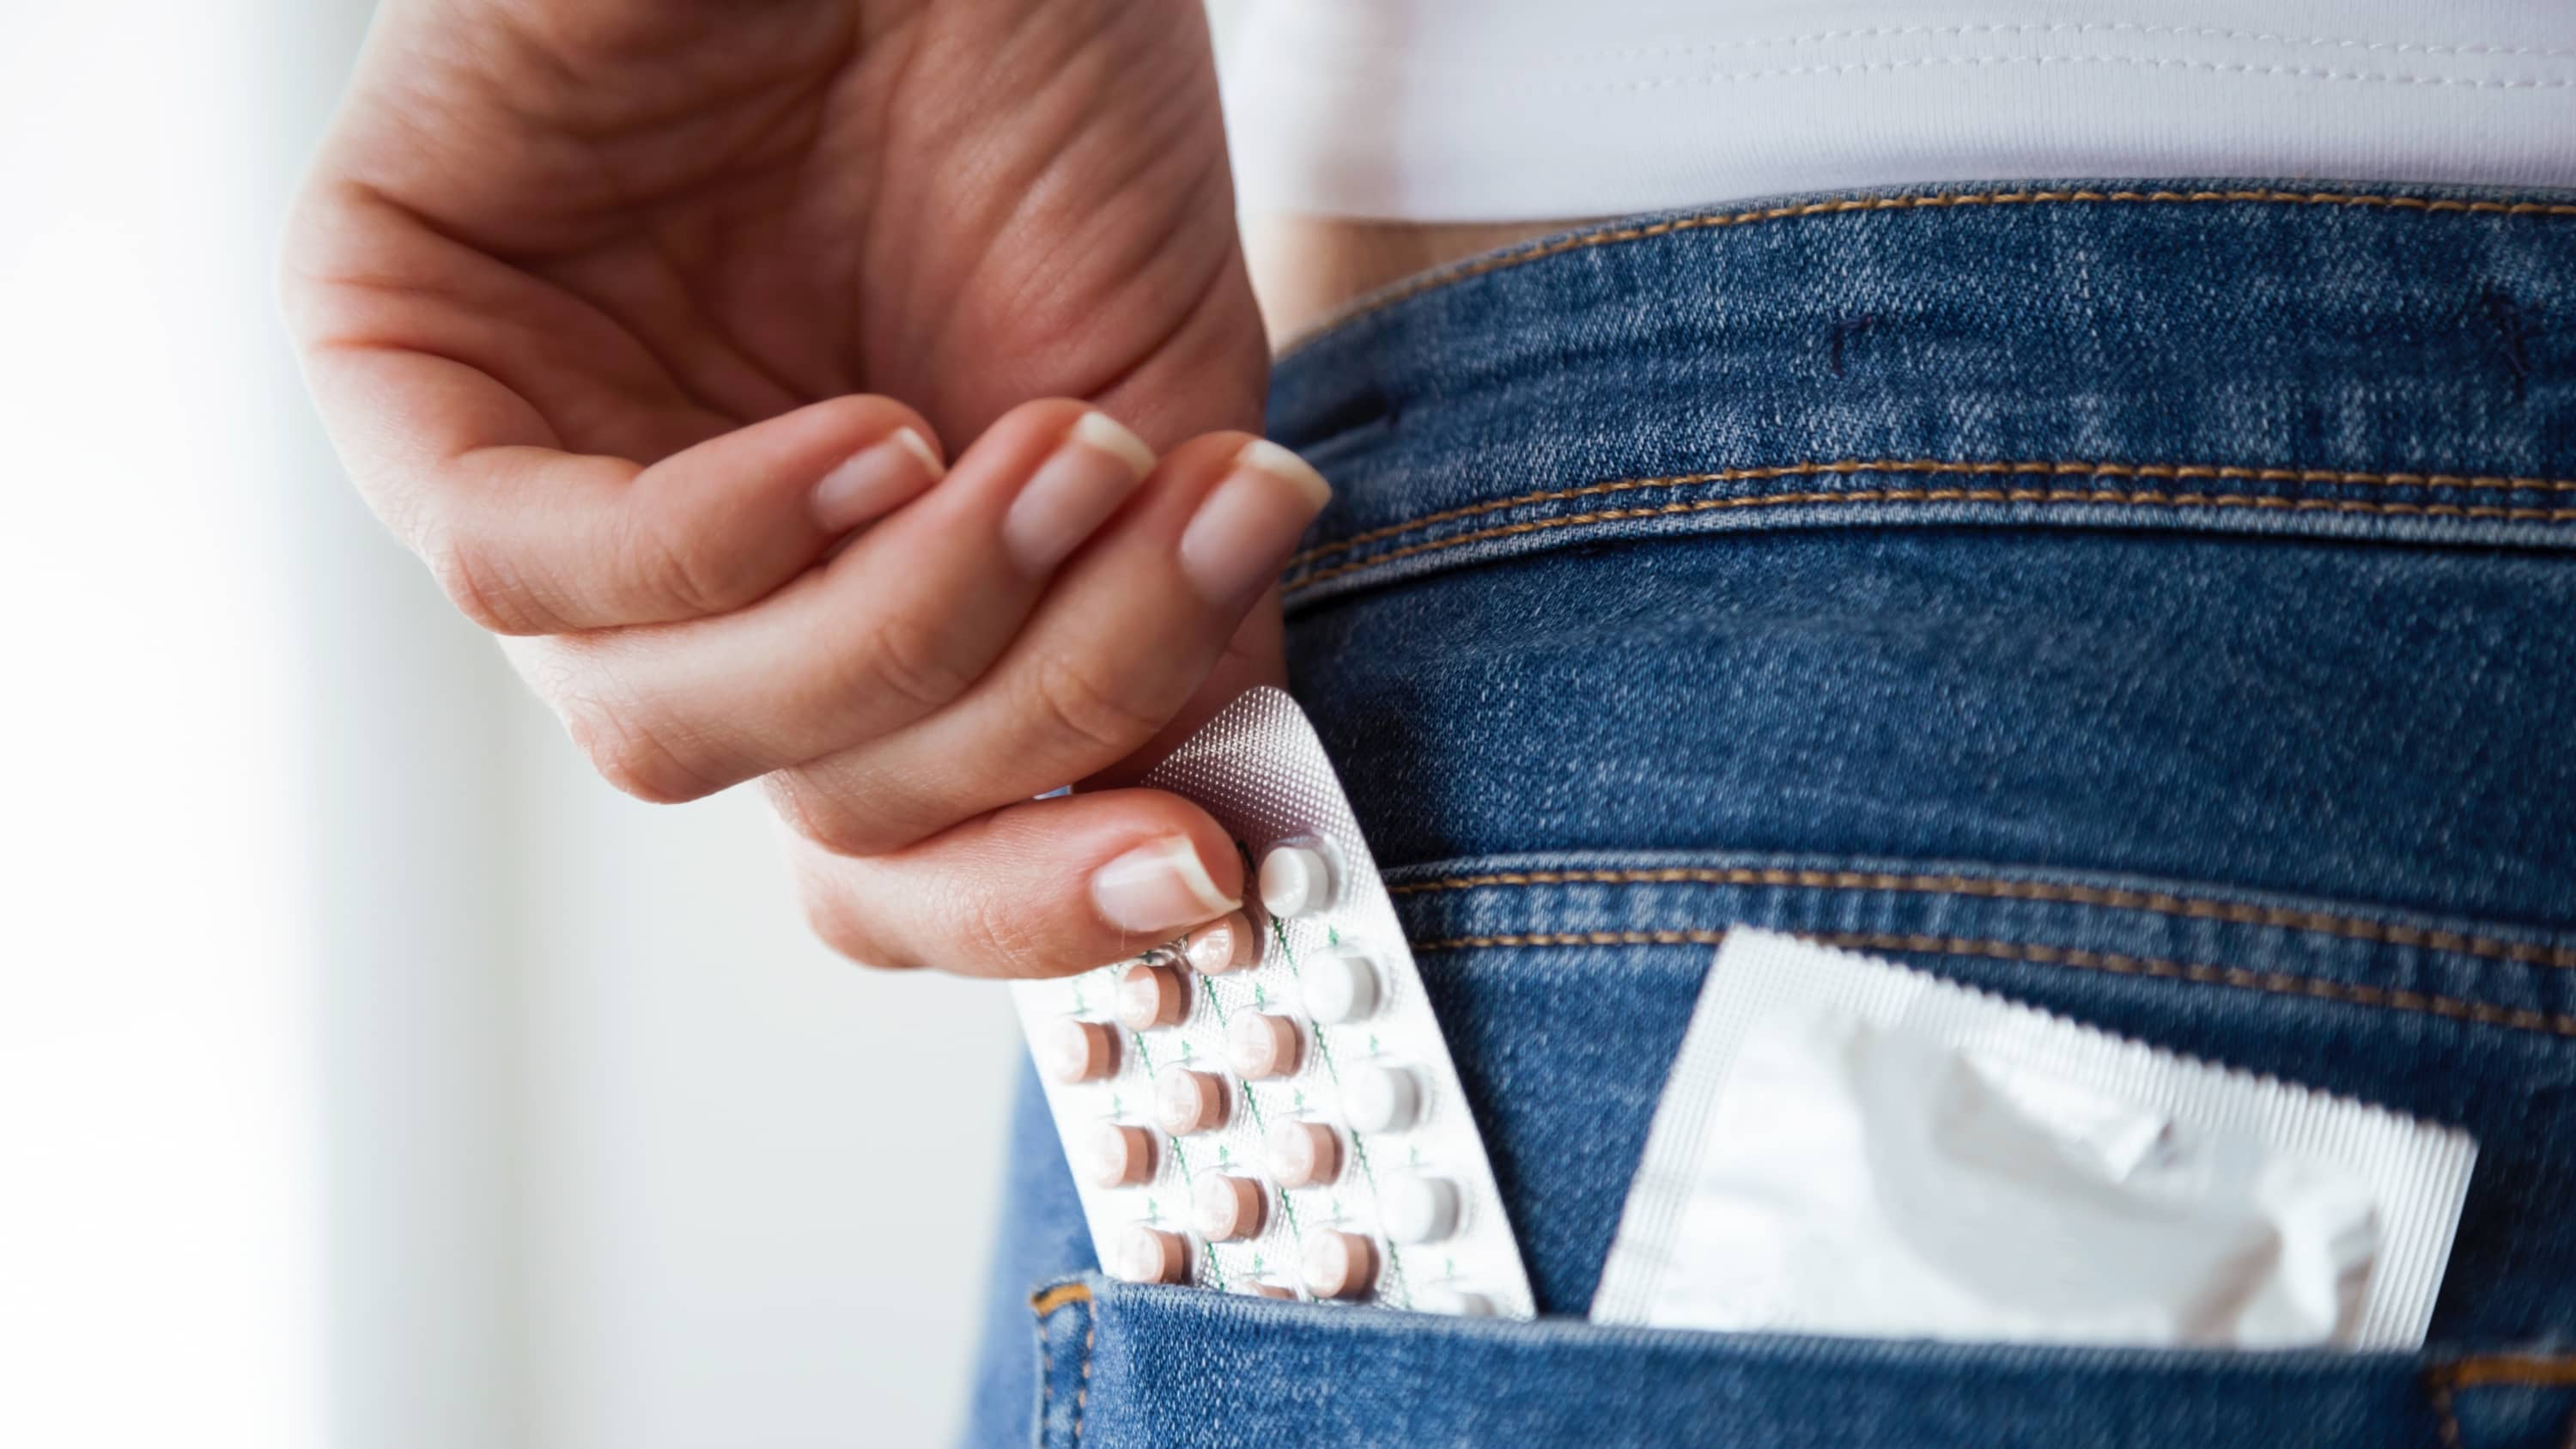 Woman with contraceptive pills and condom in the pocket of blue jeans